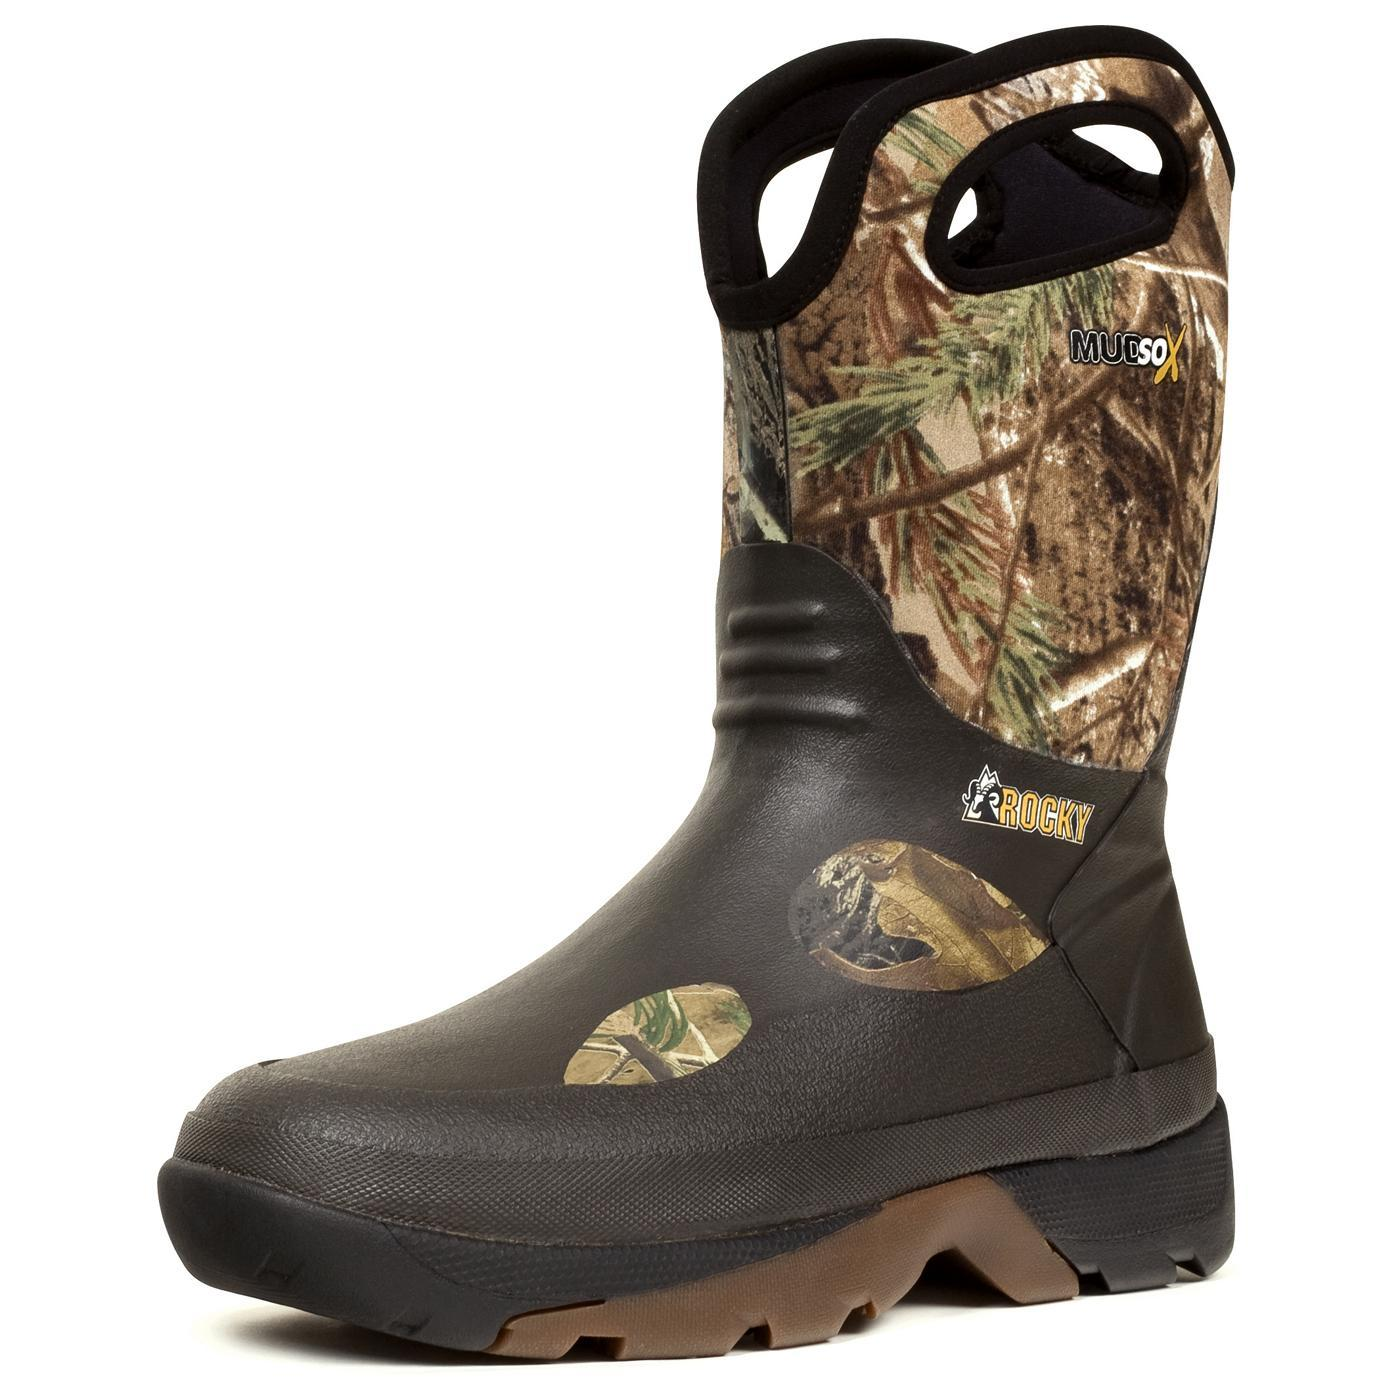 54b9a6e43fa Rocky MudSox Waterproof Hunting Boot